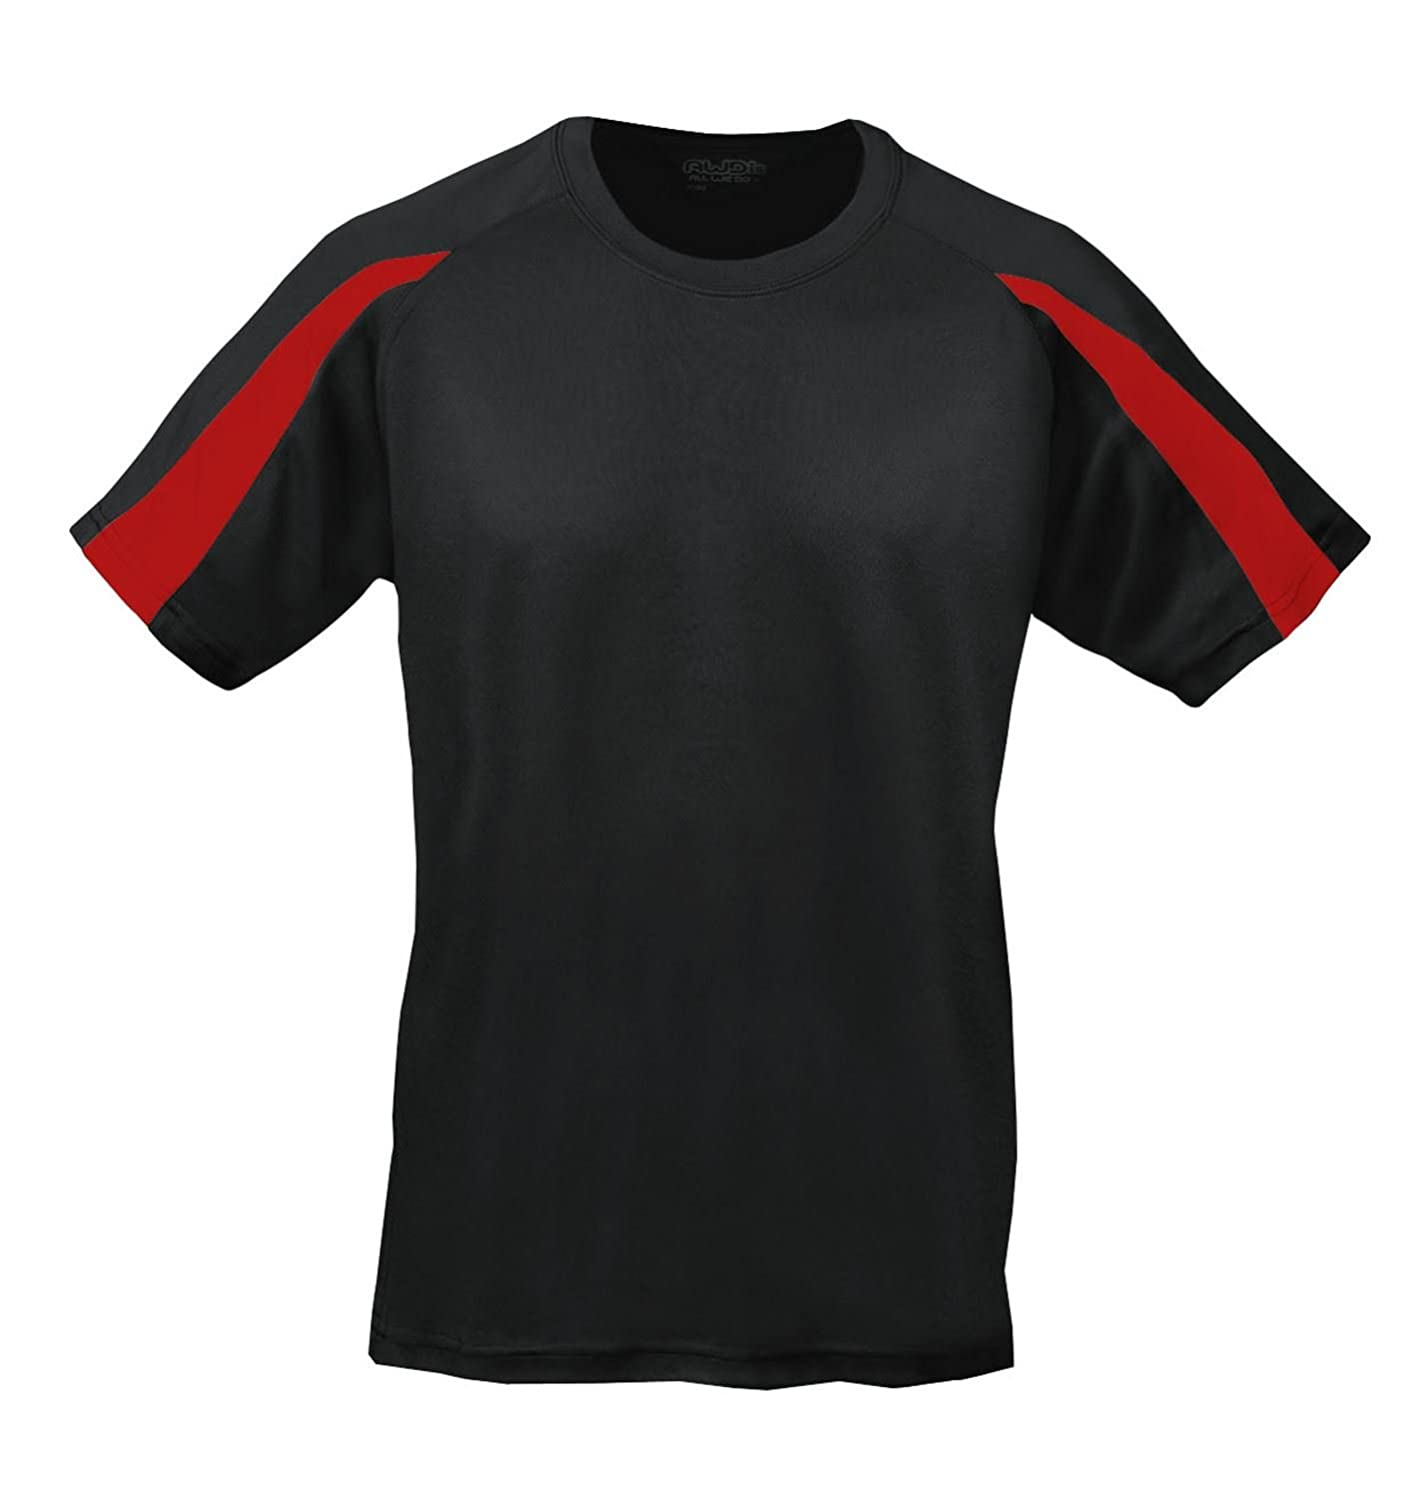 AWDis Cool Contrast T-Shirt JC003 Jet Black/Fire Red XXL: Amazon.co.uk:  Clothing